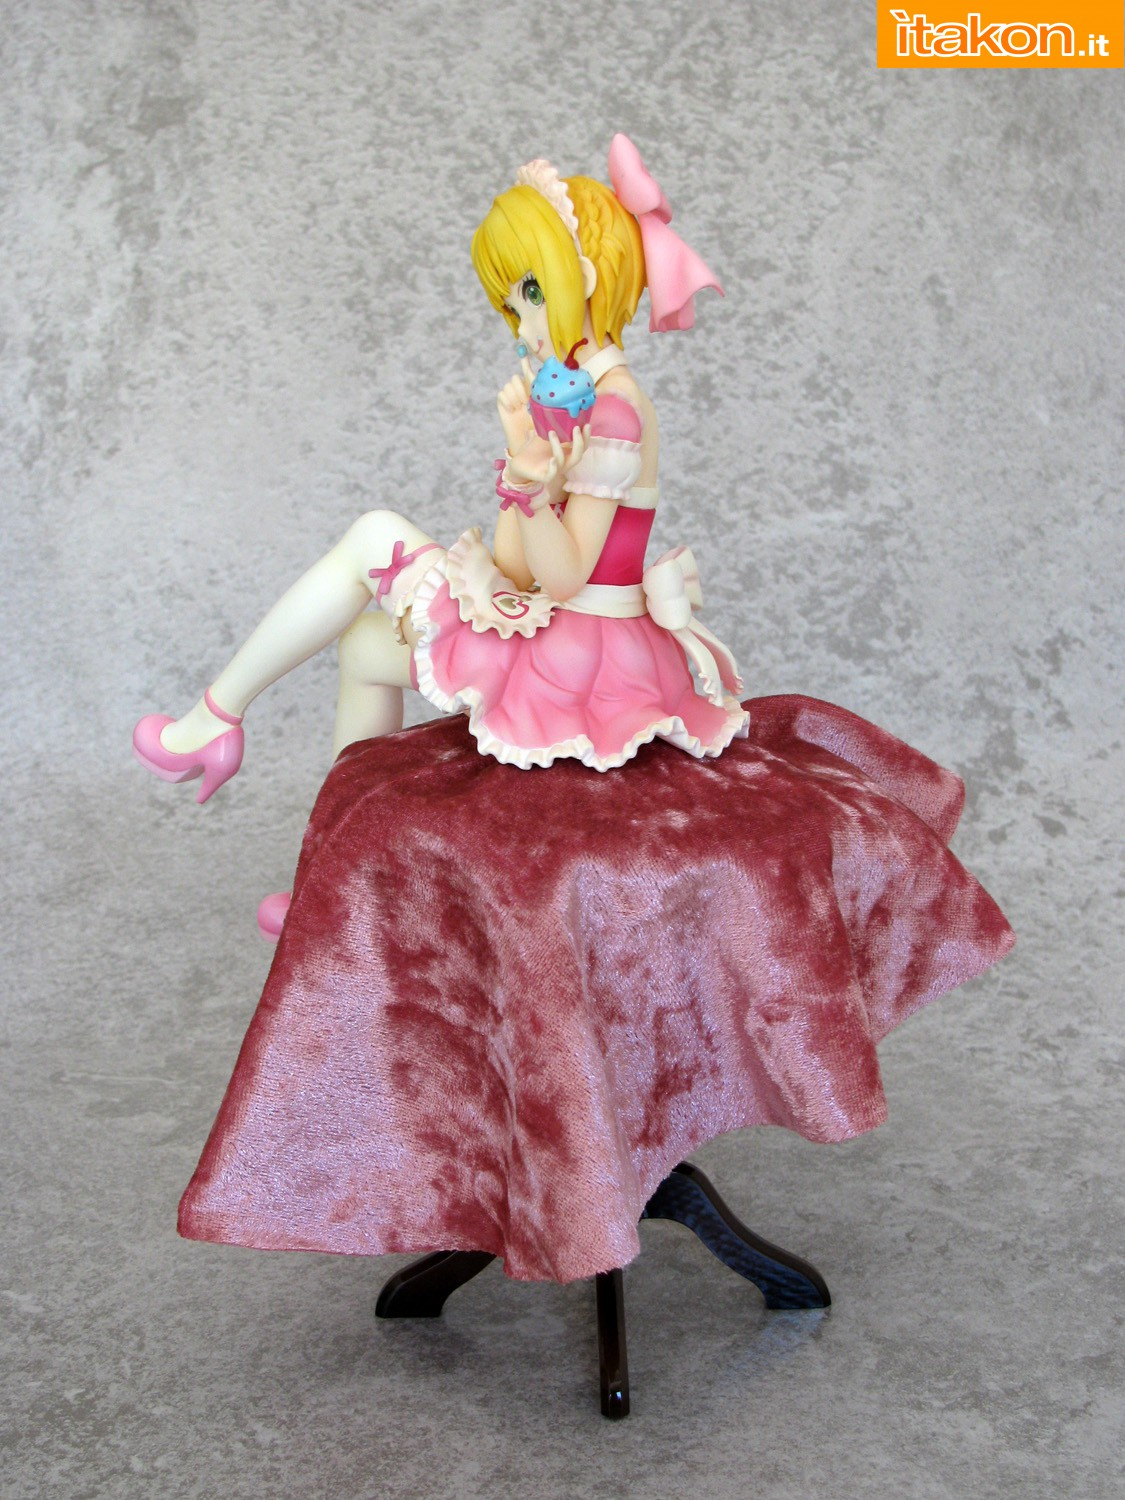 Link a 006 Frederica Miyamoto Little Devil Maid Phat recensione